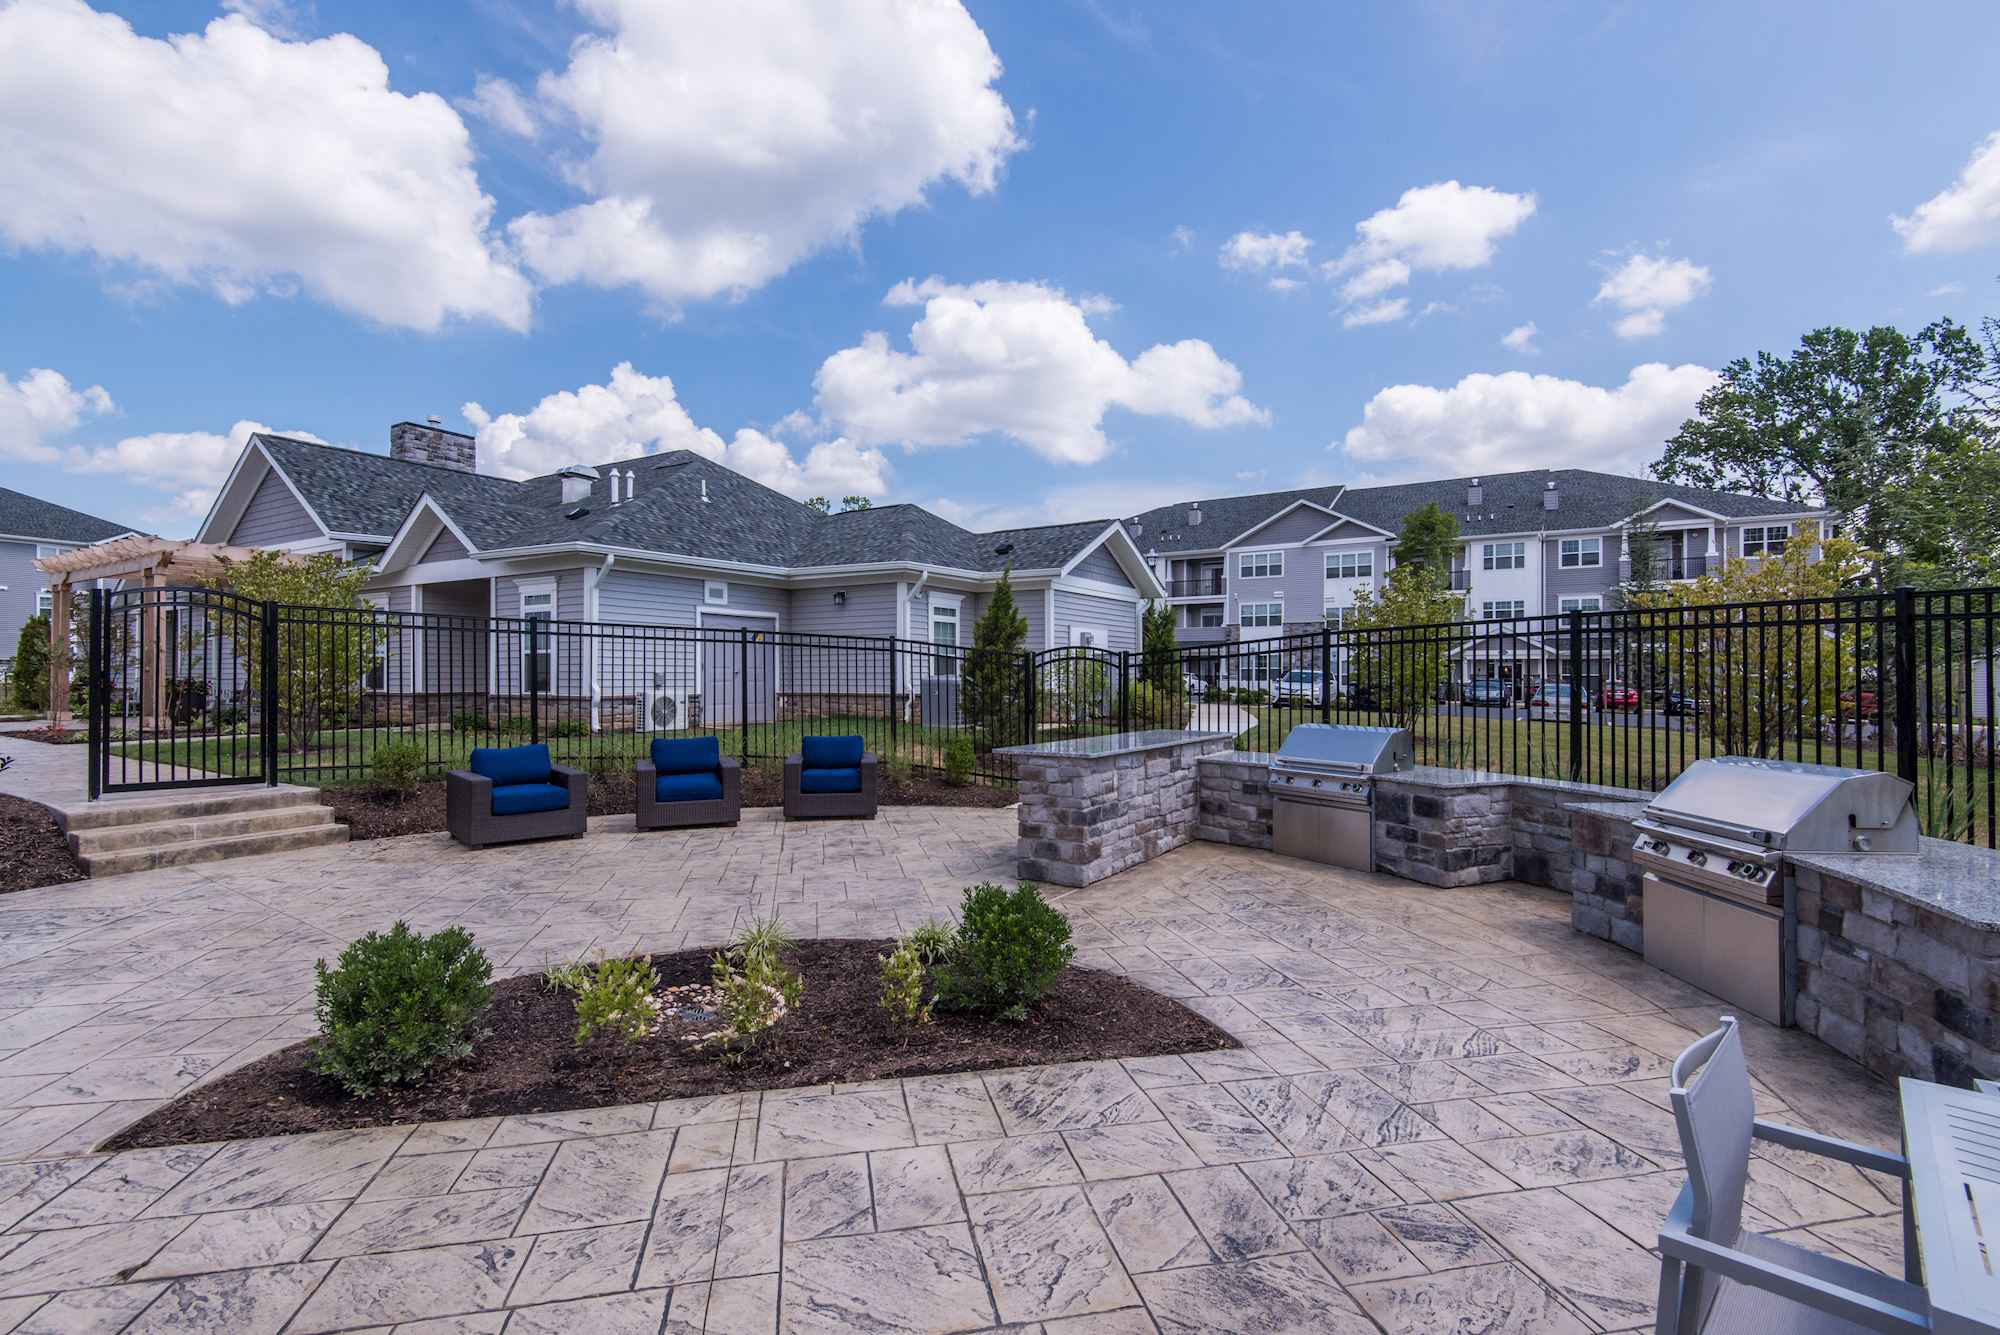 Avanti Luxury Apartments in Bel Air, MD - Outdoor Living Area